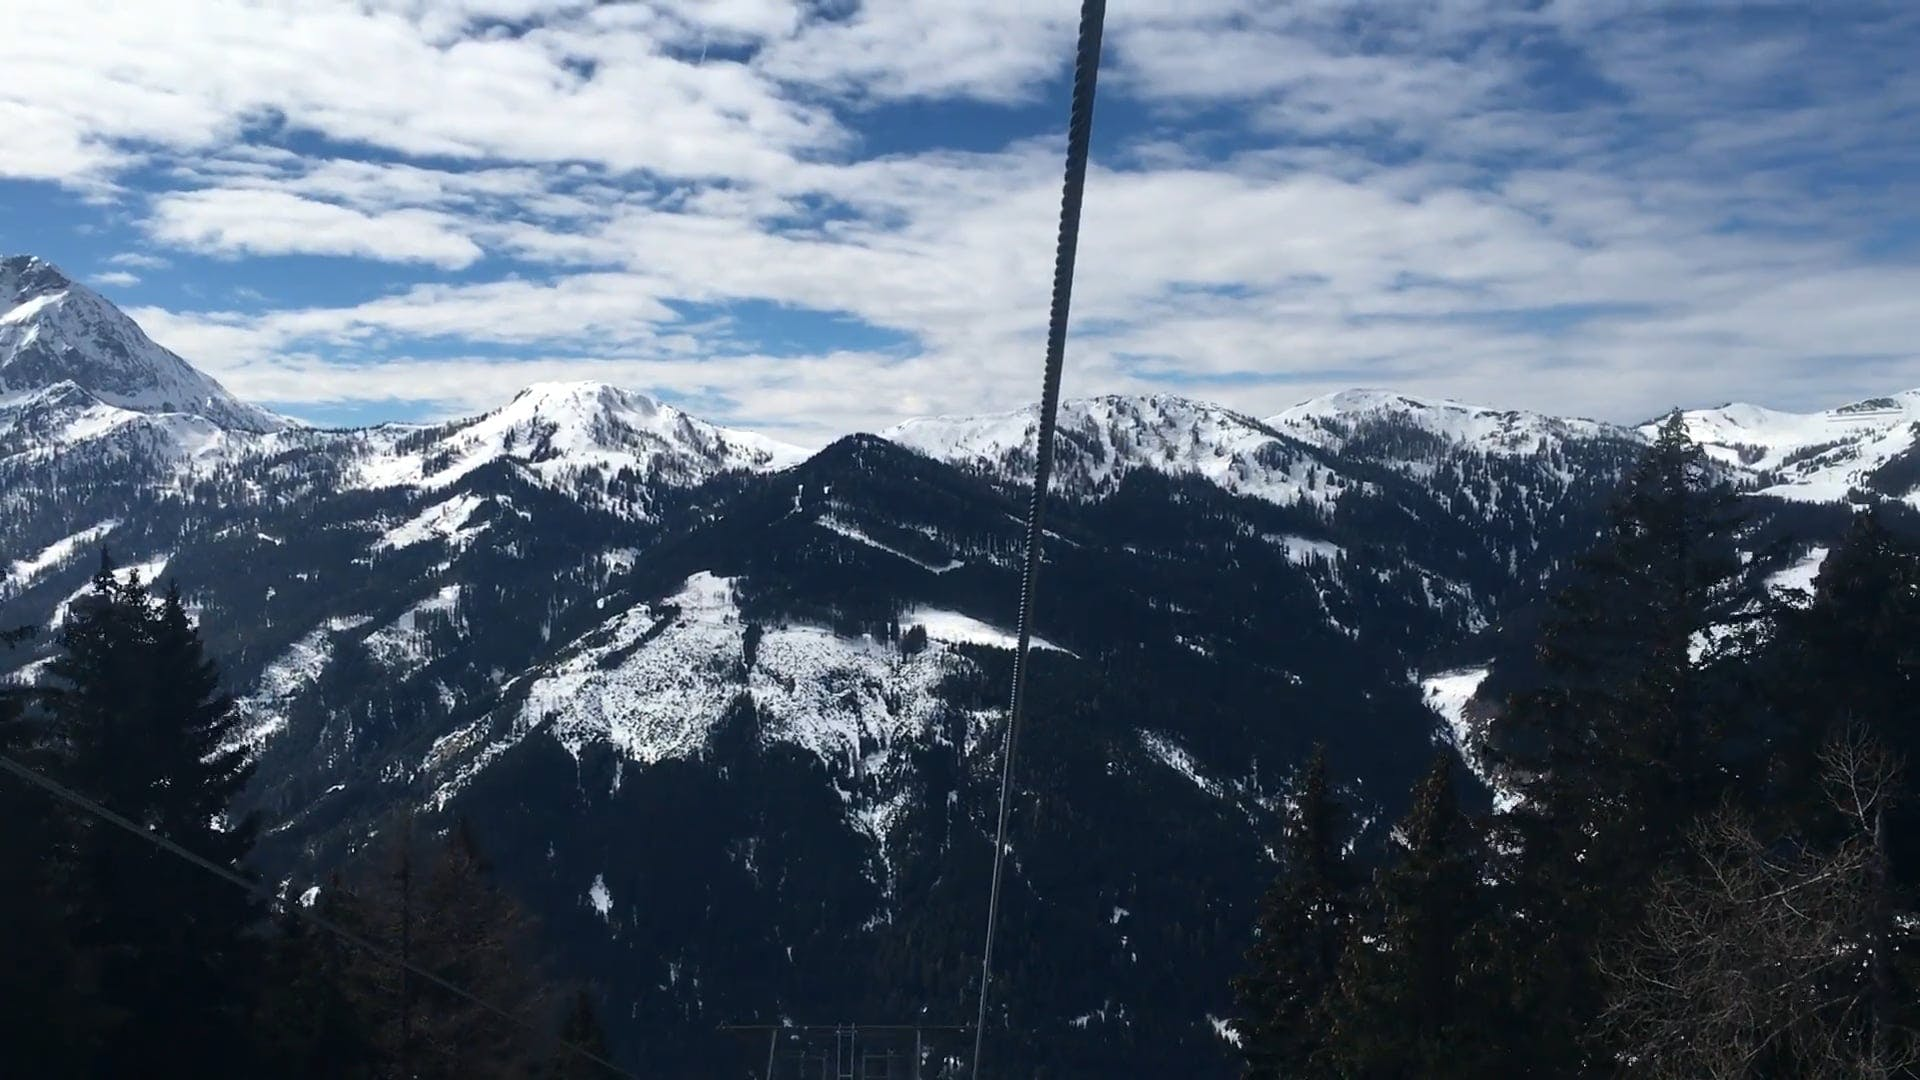 Mountain View Video While Riding A Ski Lifft